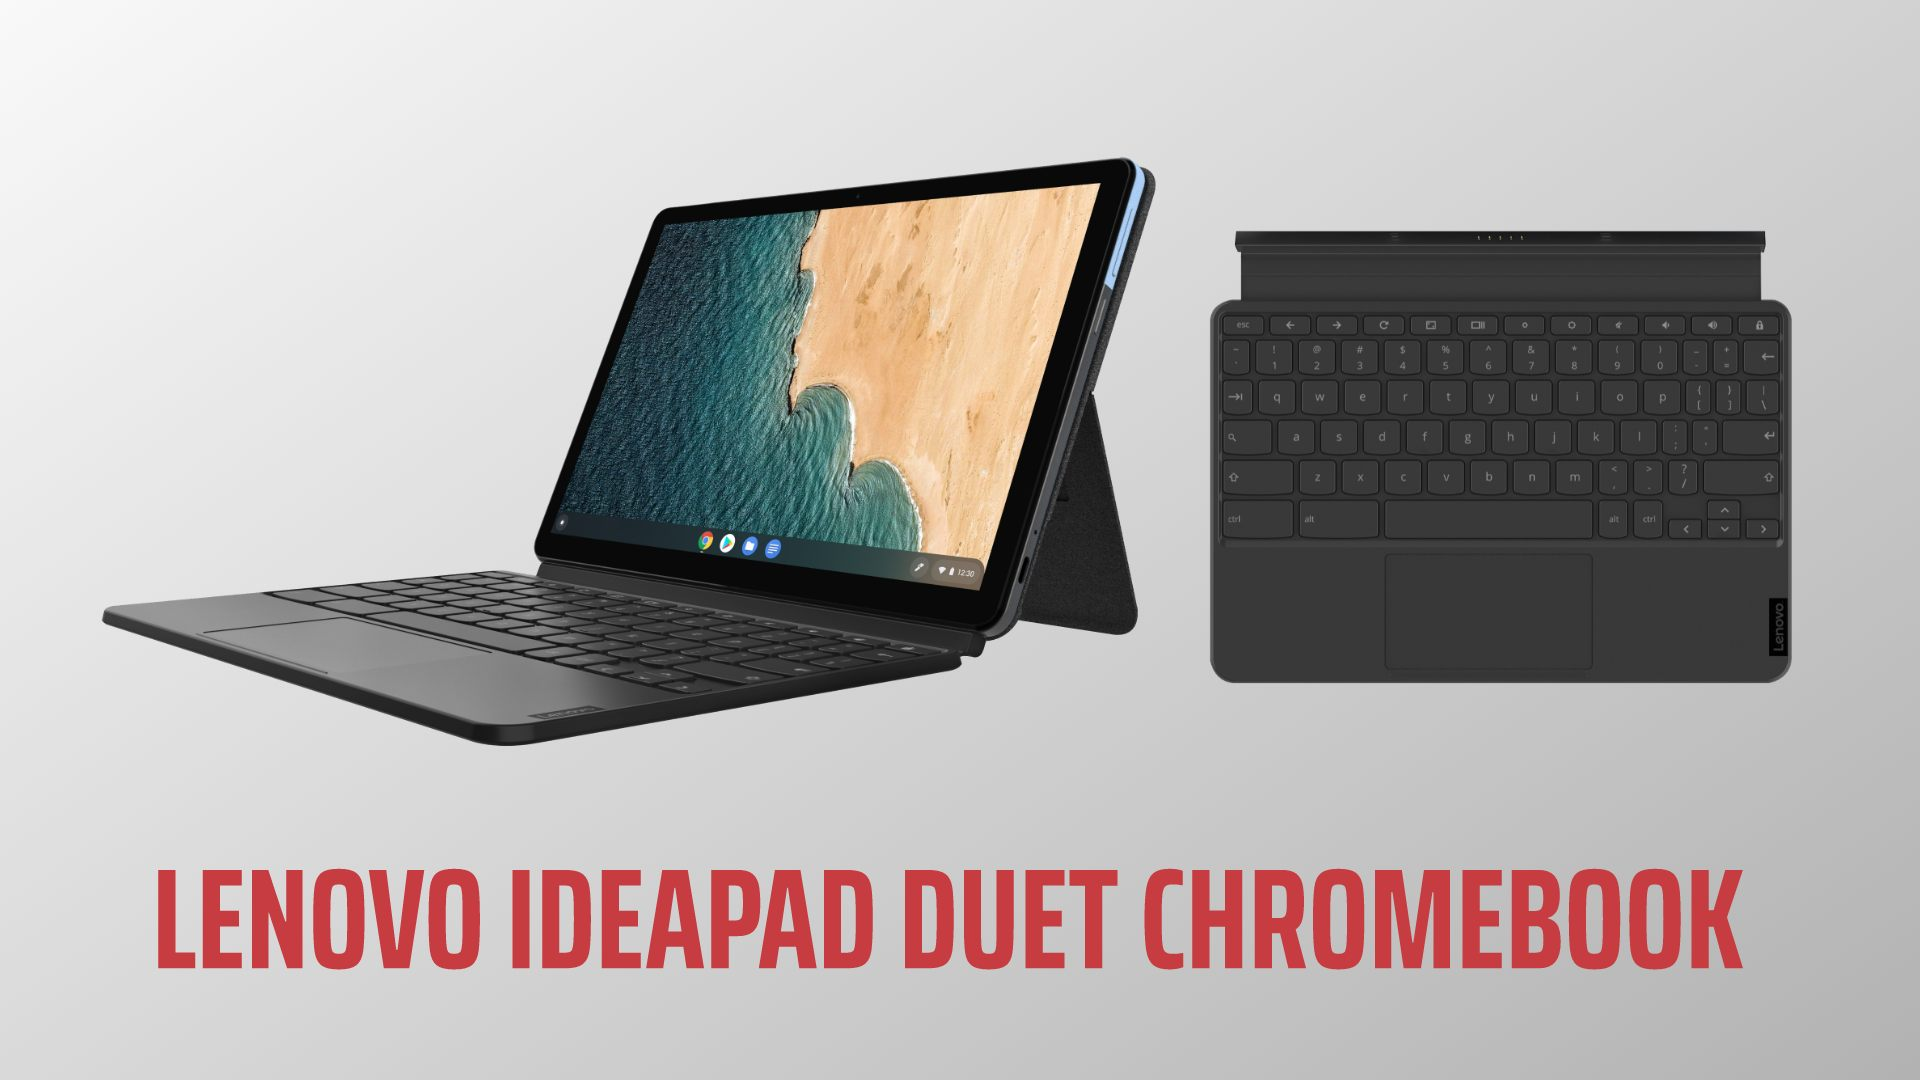 Chromebook tablets get second life starting with the Lenovo IdeaPad Duet